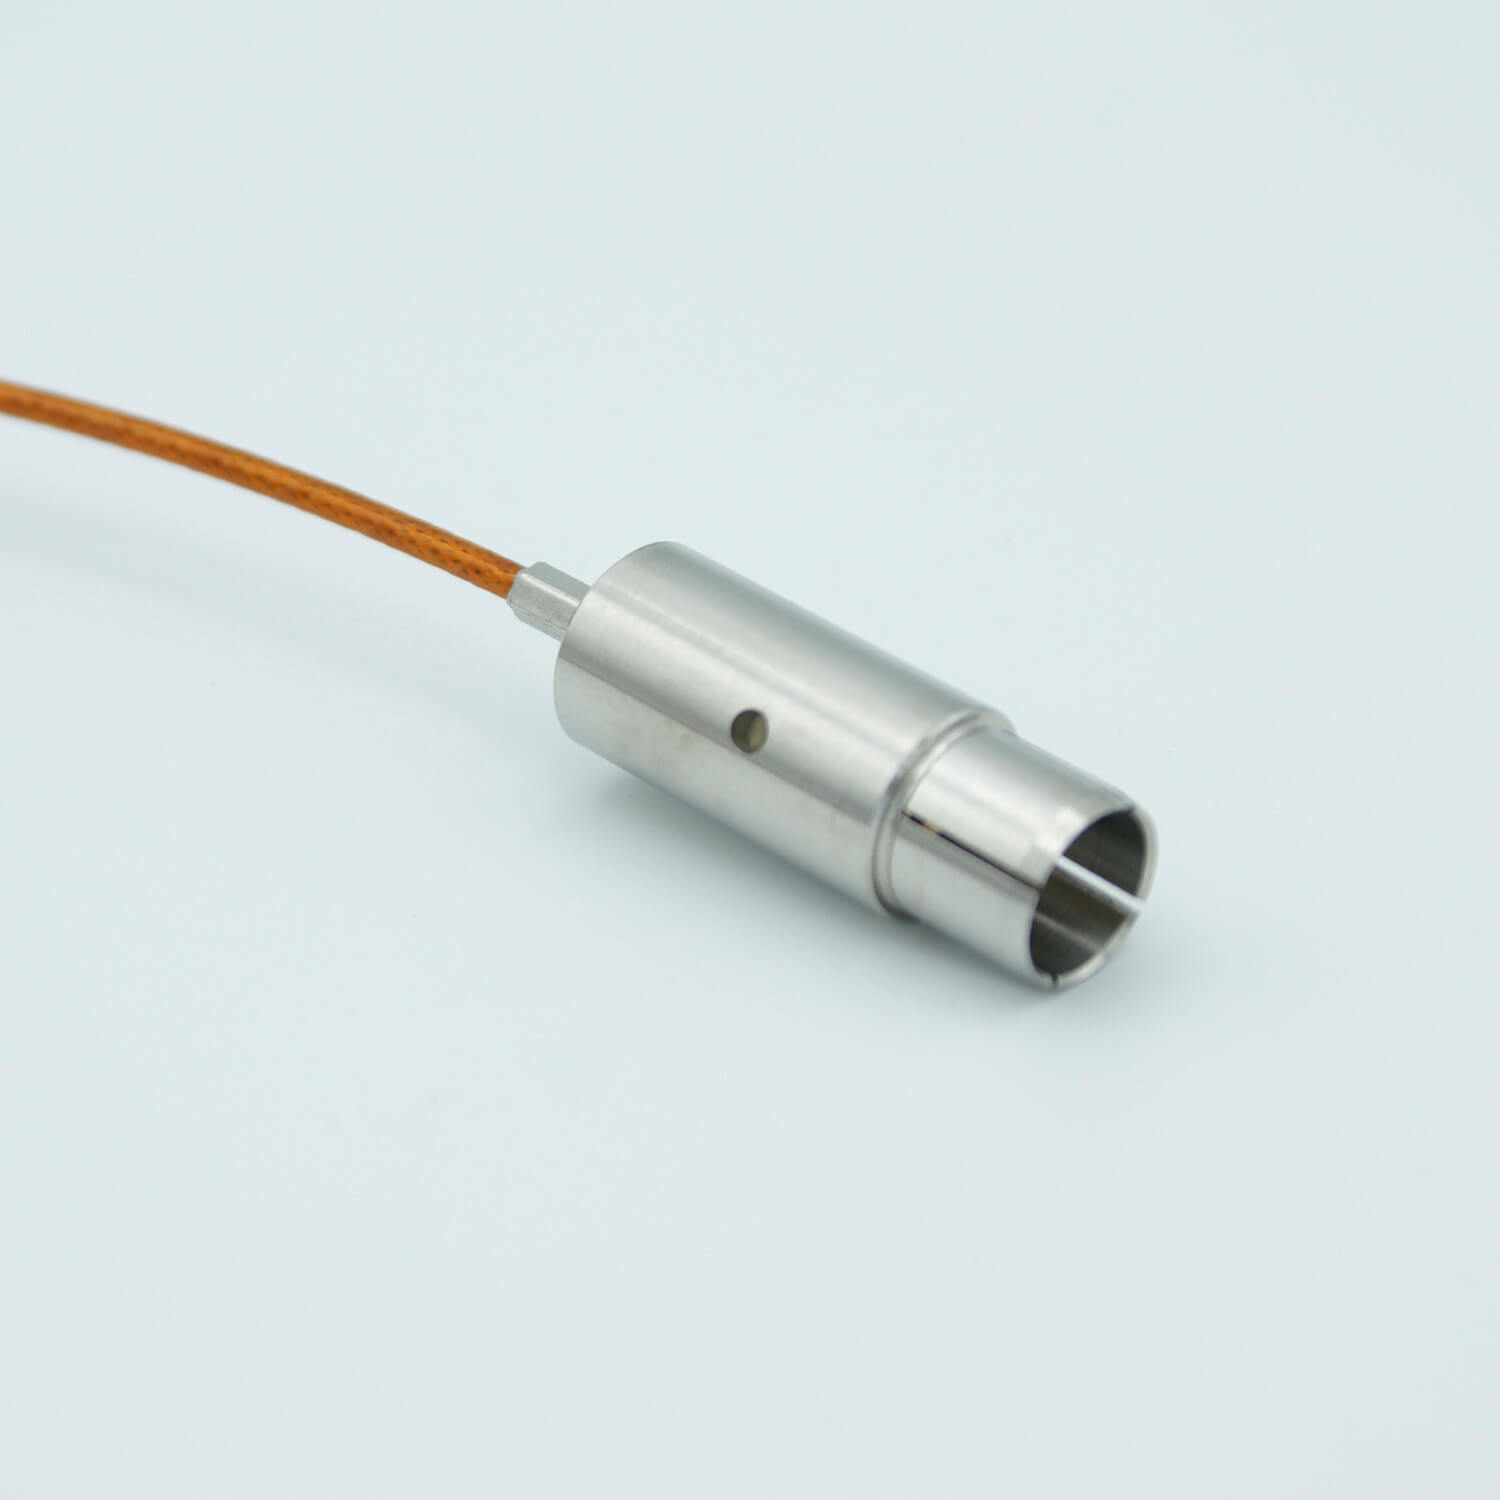 Coaxial Cable Coaxial Cable Assembly In Vacuum Grounded Shield Bnc Connector 50 Ohm Coaxial Cable W Kapton Insulation 39